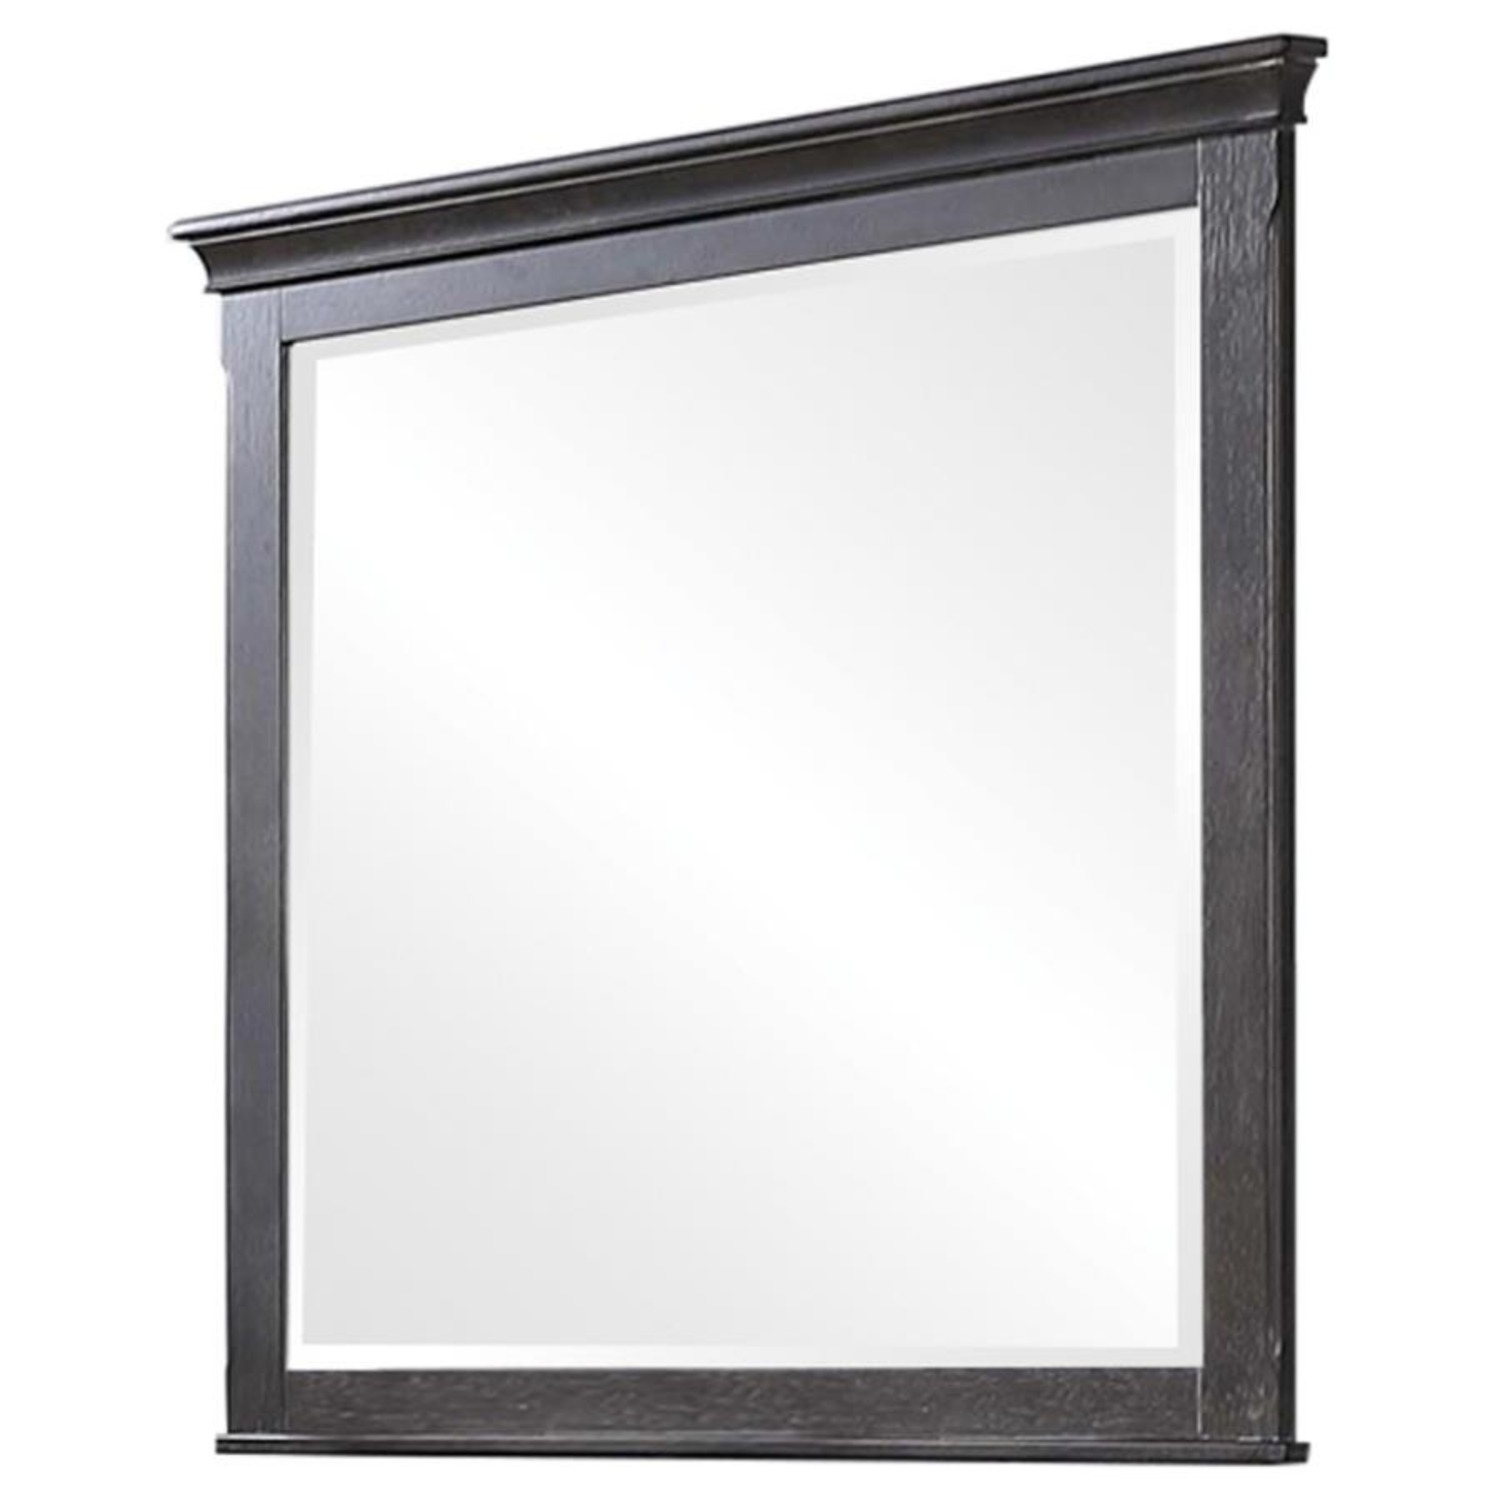 Mirror In Trending Weathered Sage Finish - image-0